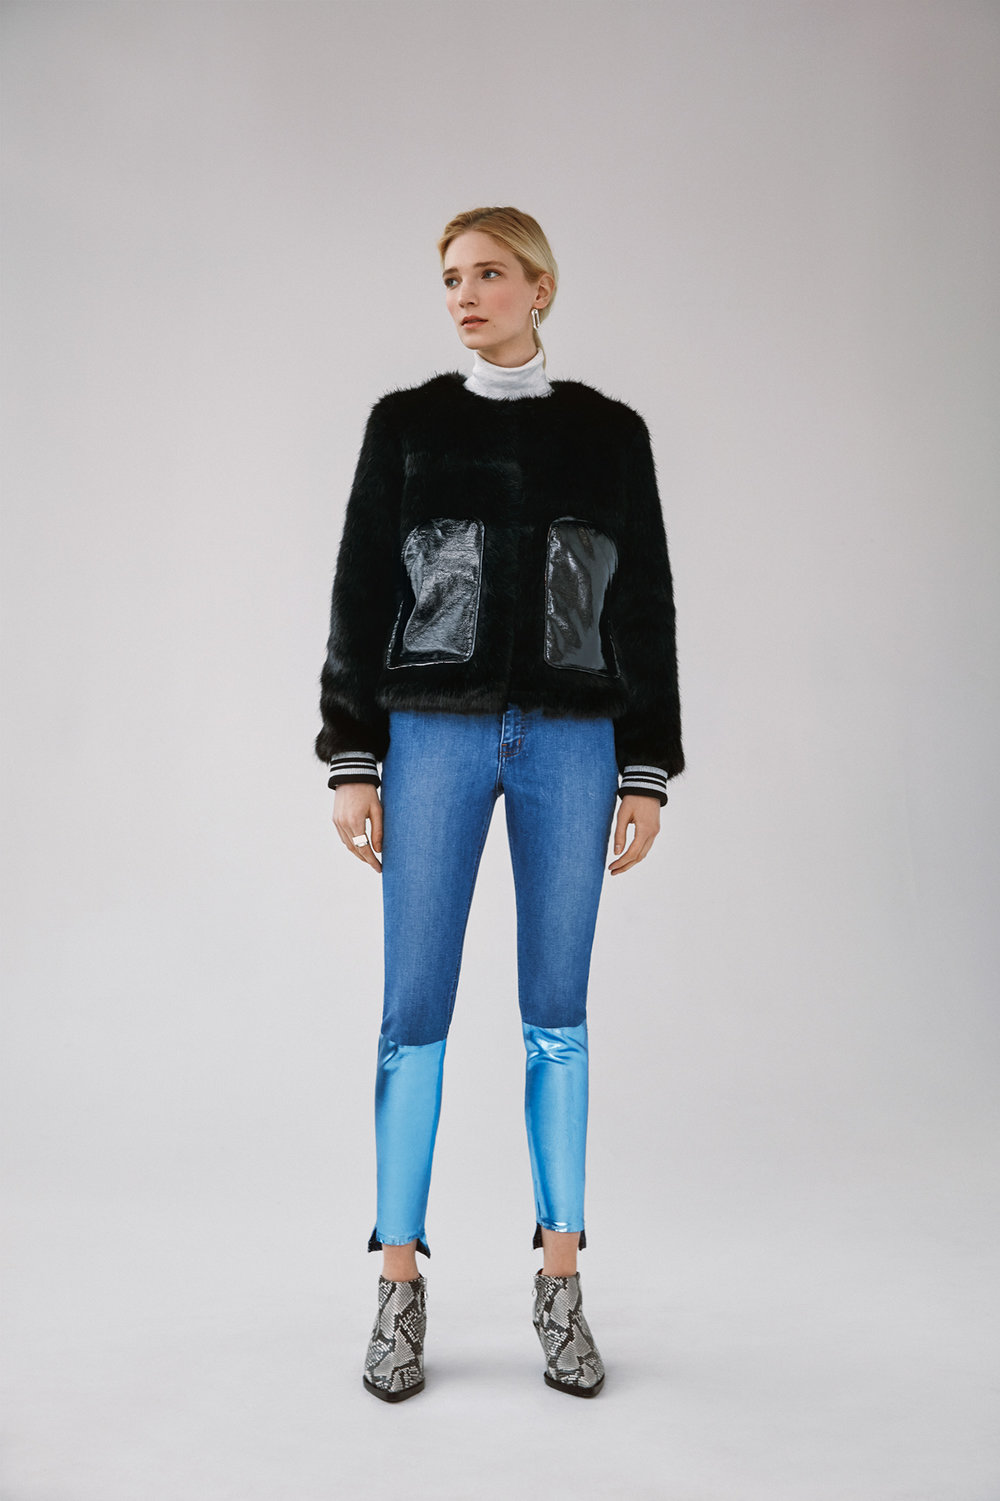 faux fur jacket with contrast pocket high waist foil block printed uneven hem skinny jeans